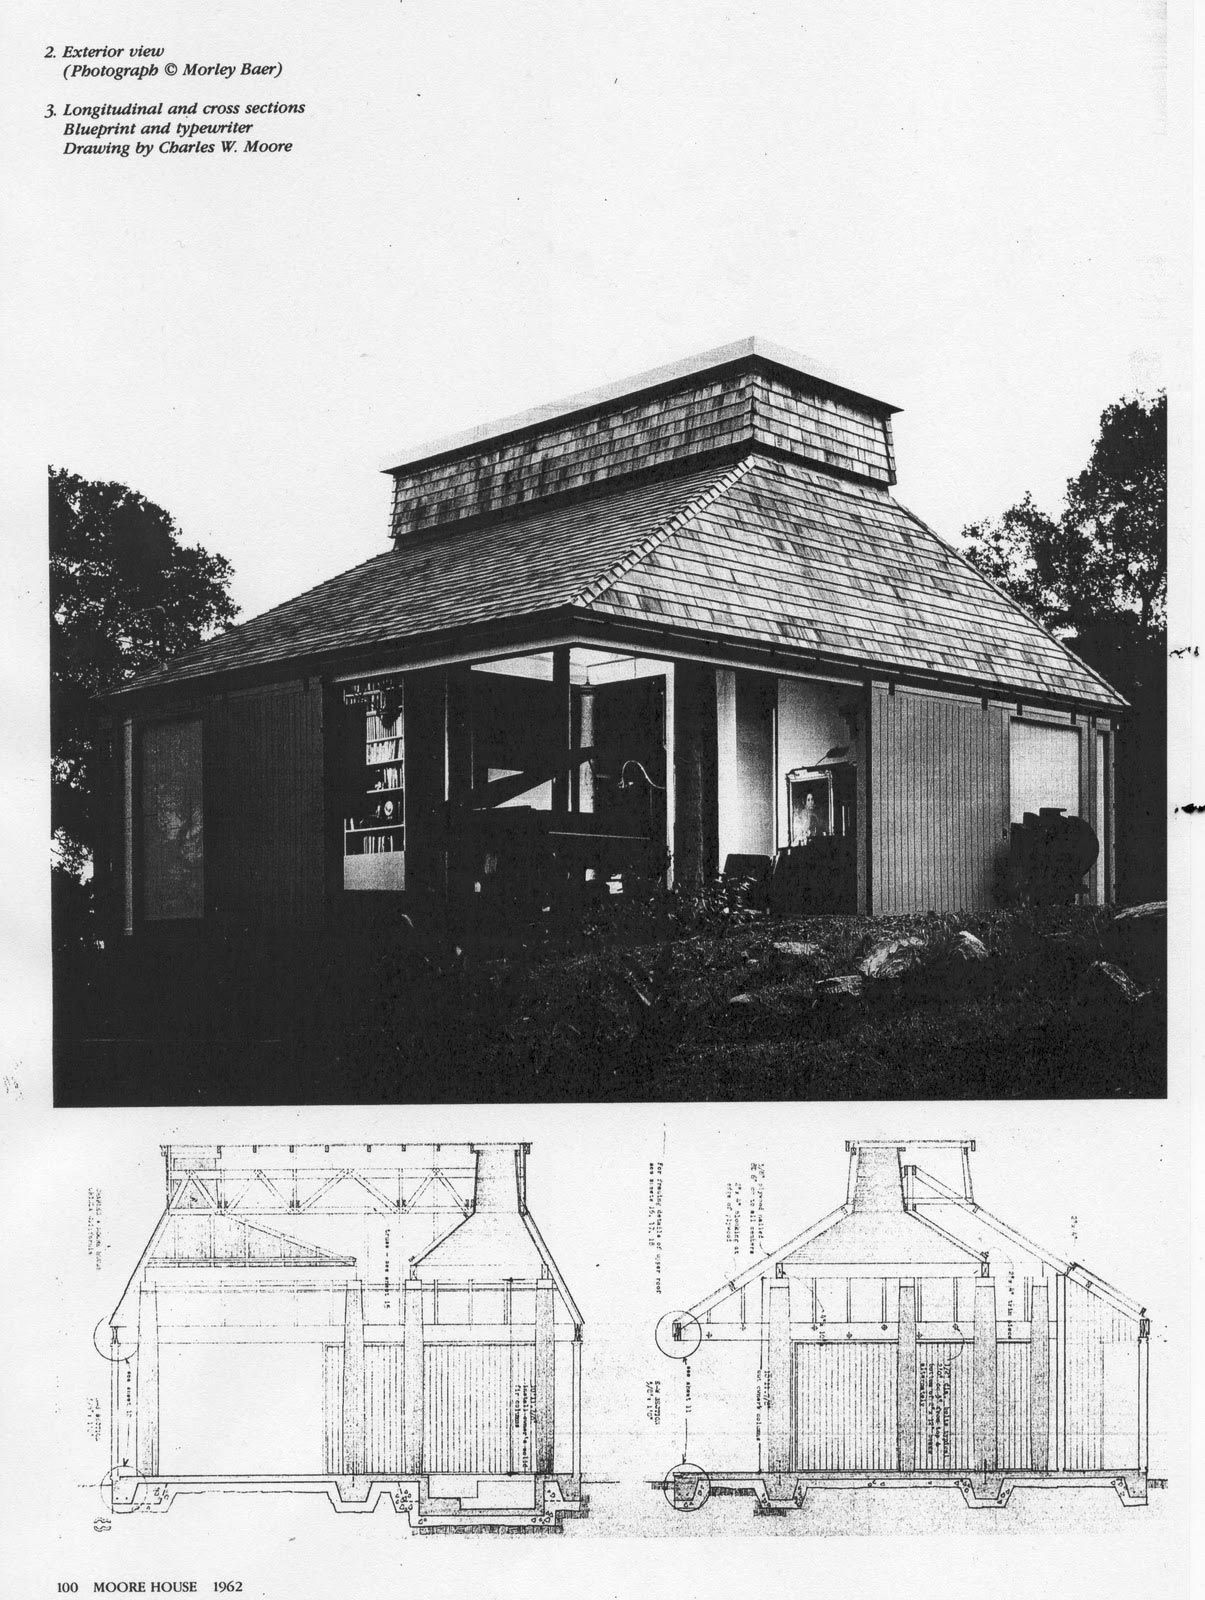 Archetypes And Free Plan Orinda House By Charles W Moore Moore House Architecture Arch House